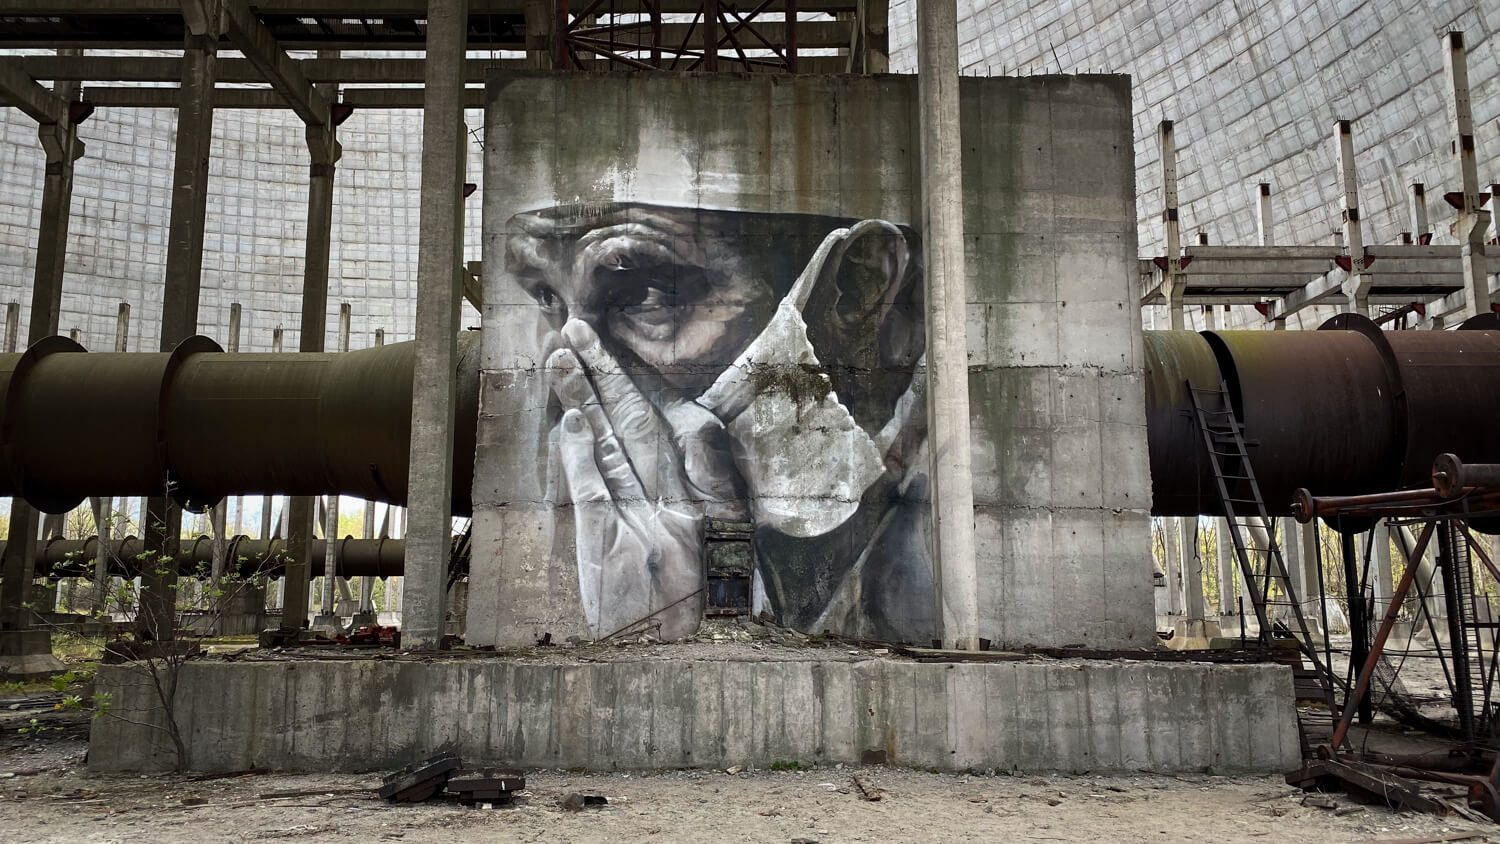 Cooling tower art in Chernobyl